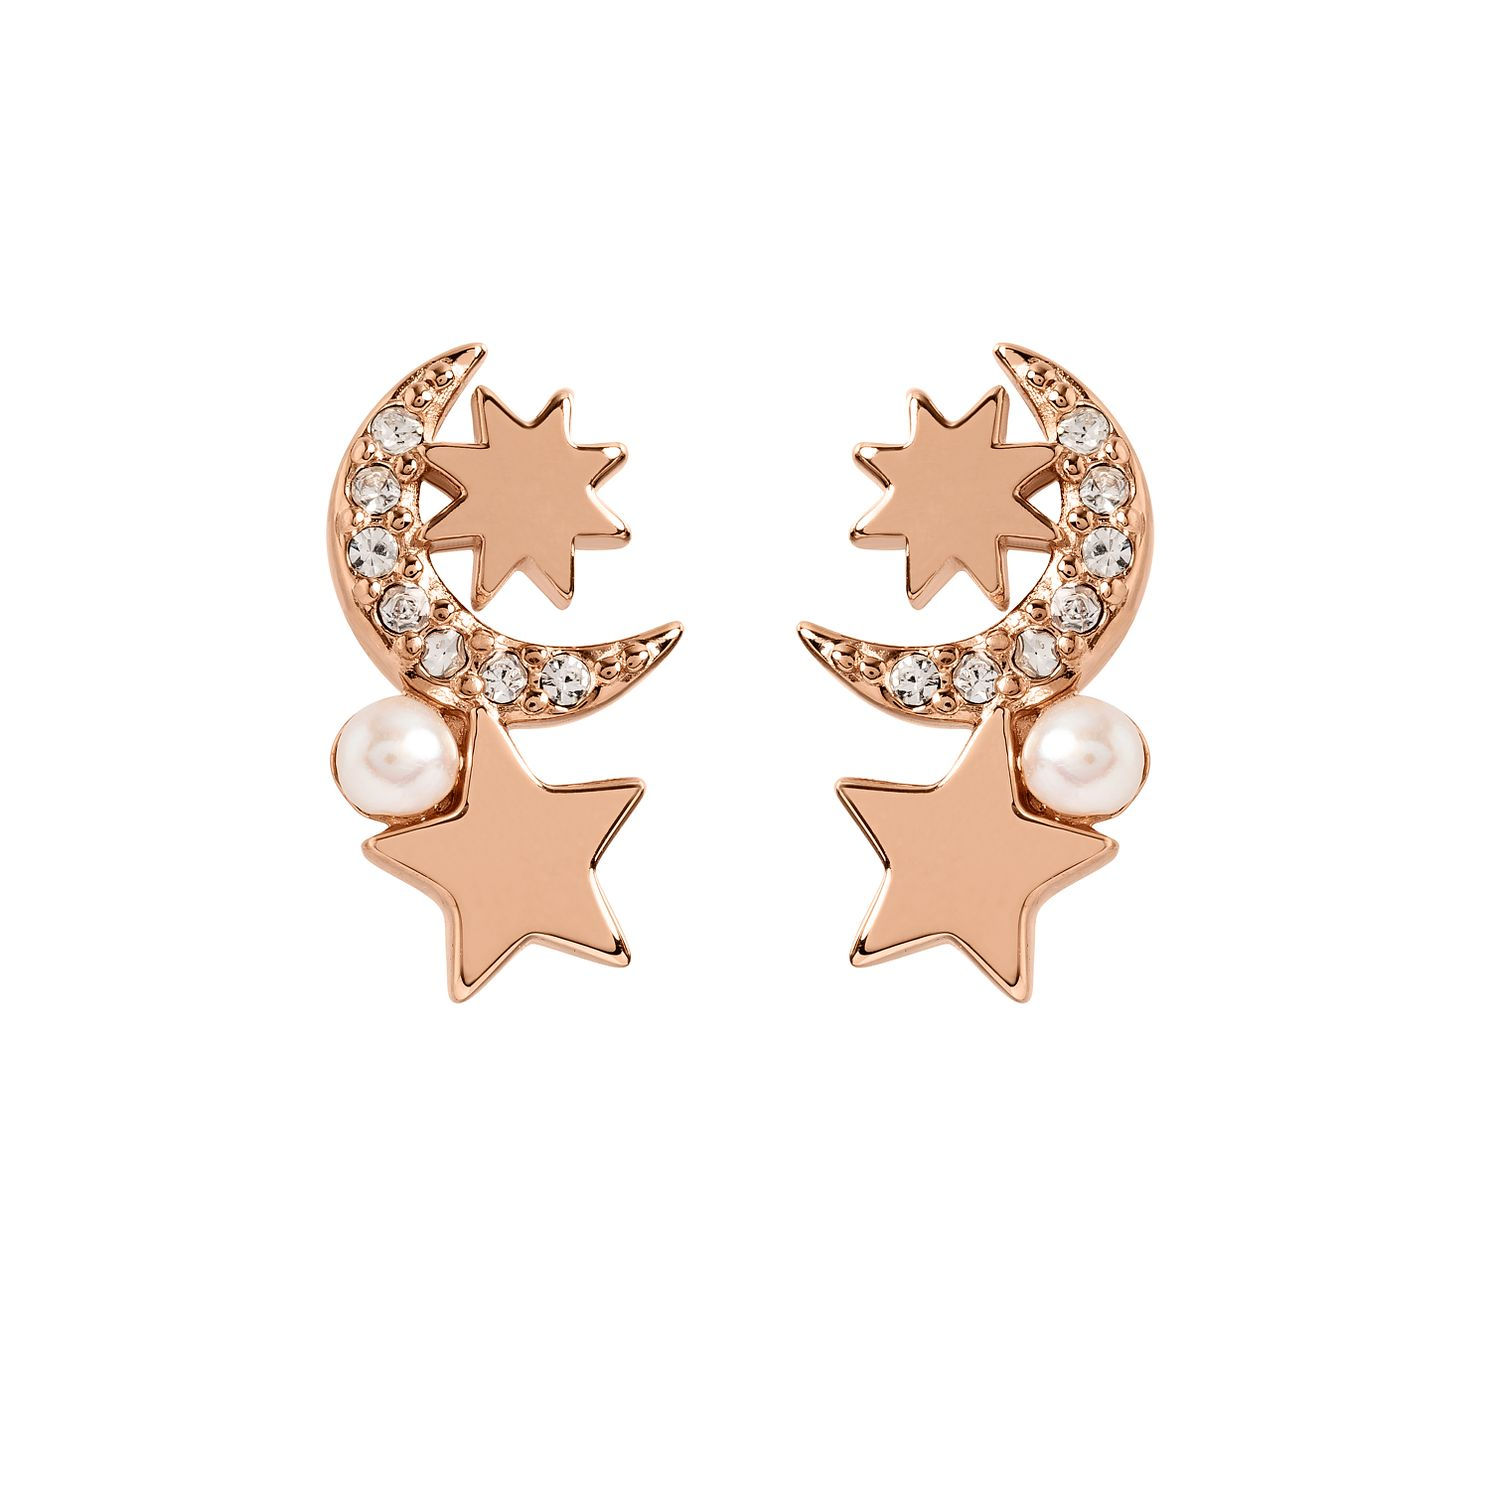 Radley 18ct Rose Gold Tone Crystal Moon & Star Stud Earrings - Product number 6088732